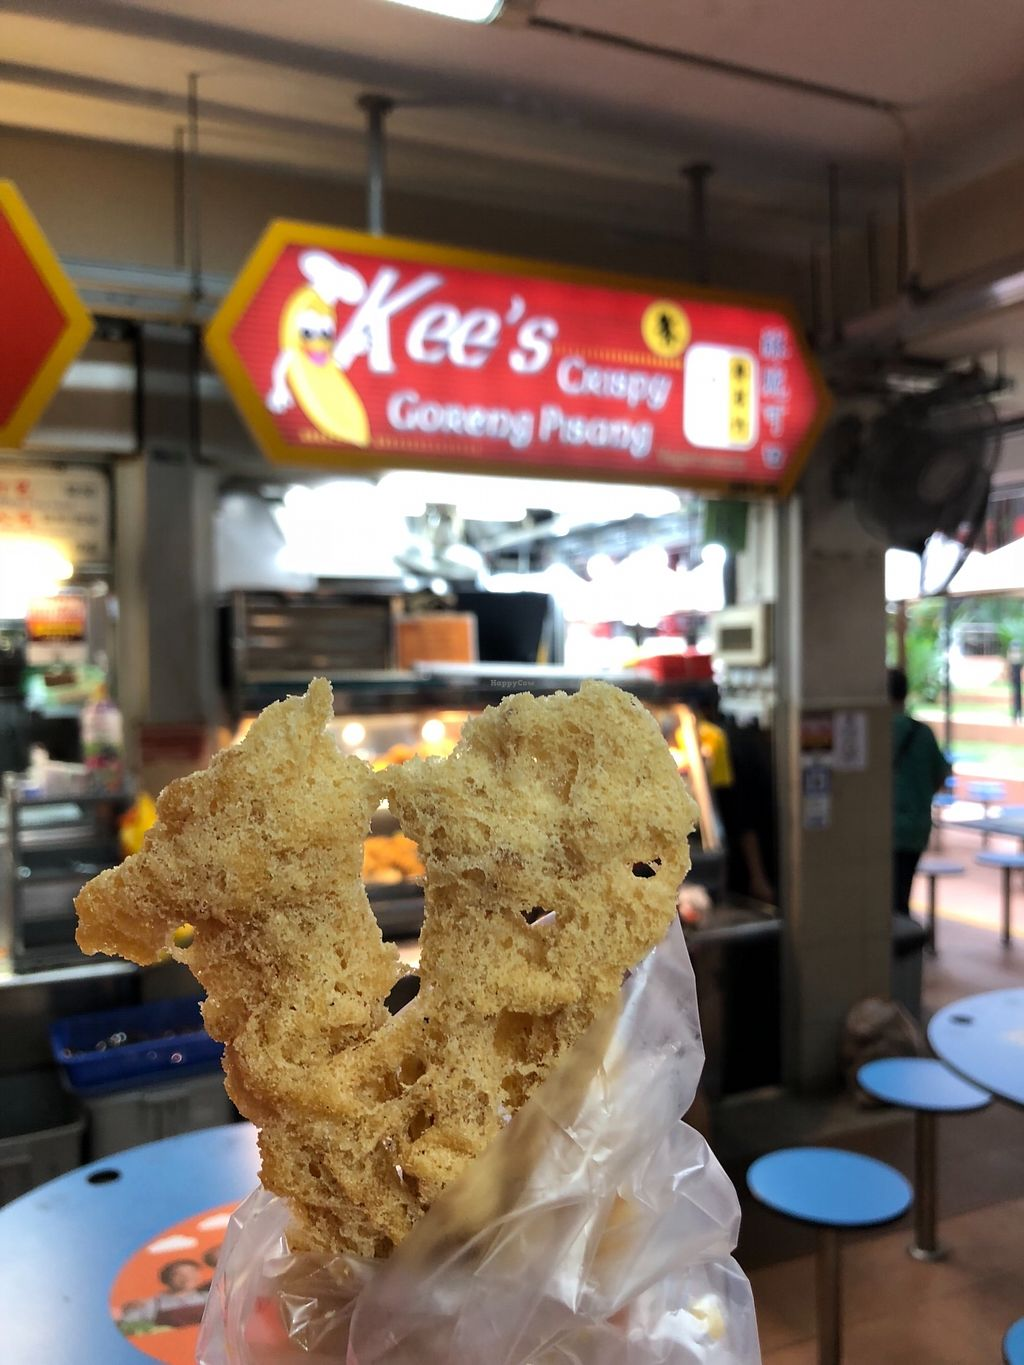 """Photo of Kee's Crispy Goreng Pisang  by <a href=""""/members/profile/CherylQuincy"""">CherylQuincy</a> <br/>Shop front. Close up of fried enoki mushrooms <br/> February 13, 2018  - <a href='/contact/abuse/image/111912/358653'>Report</a>"""